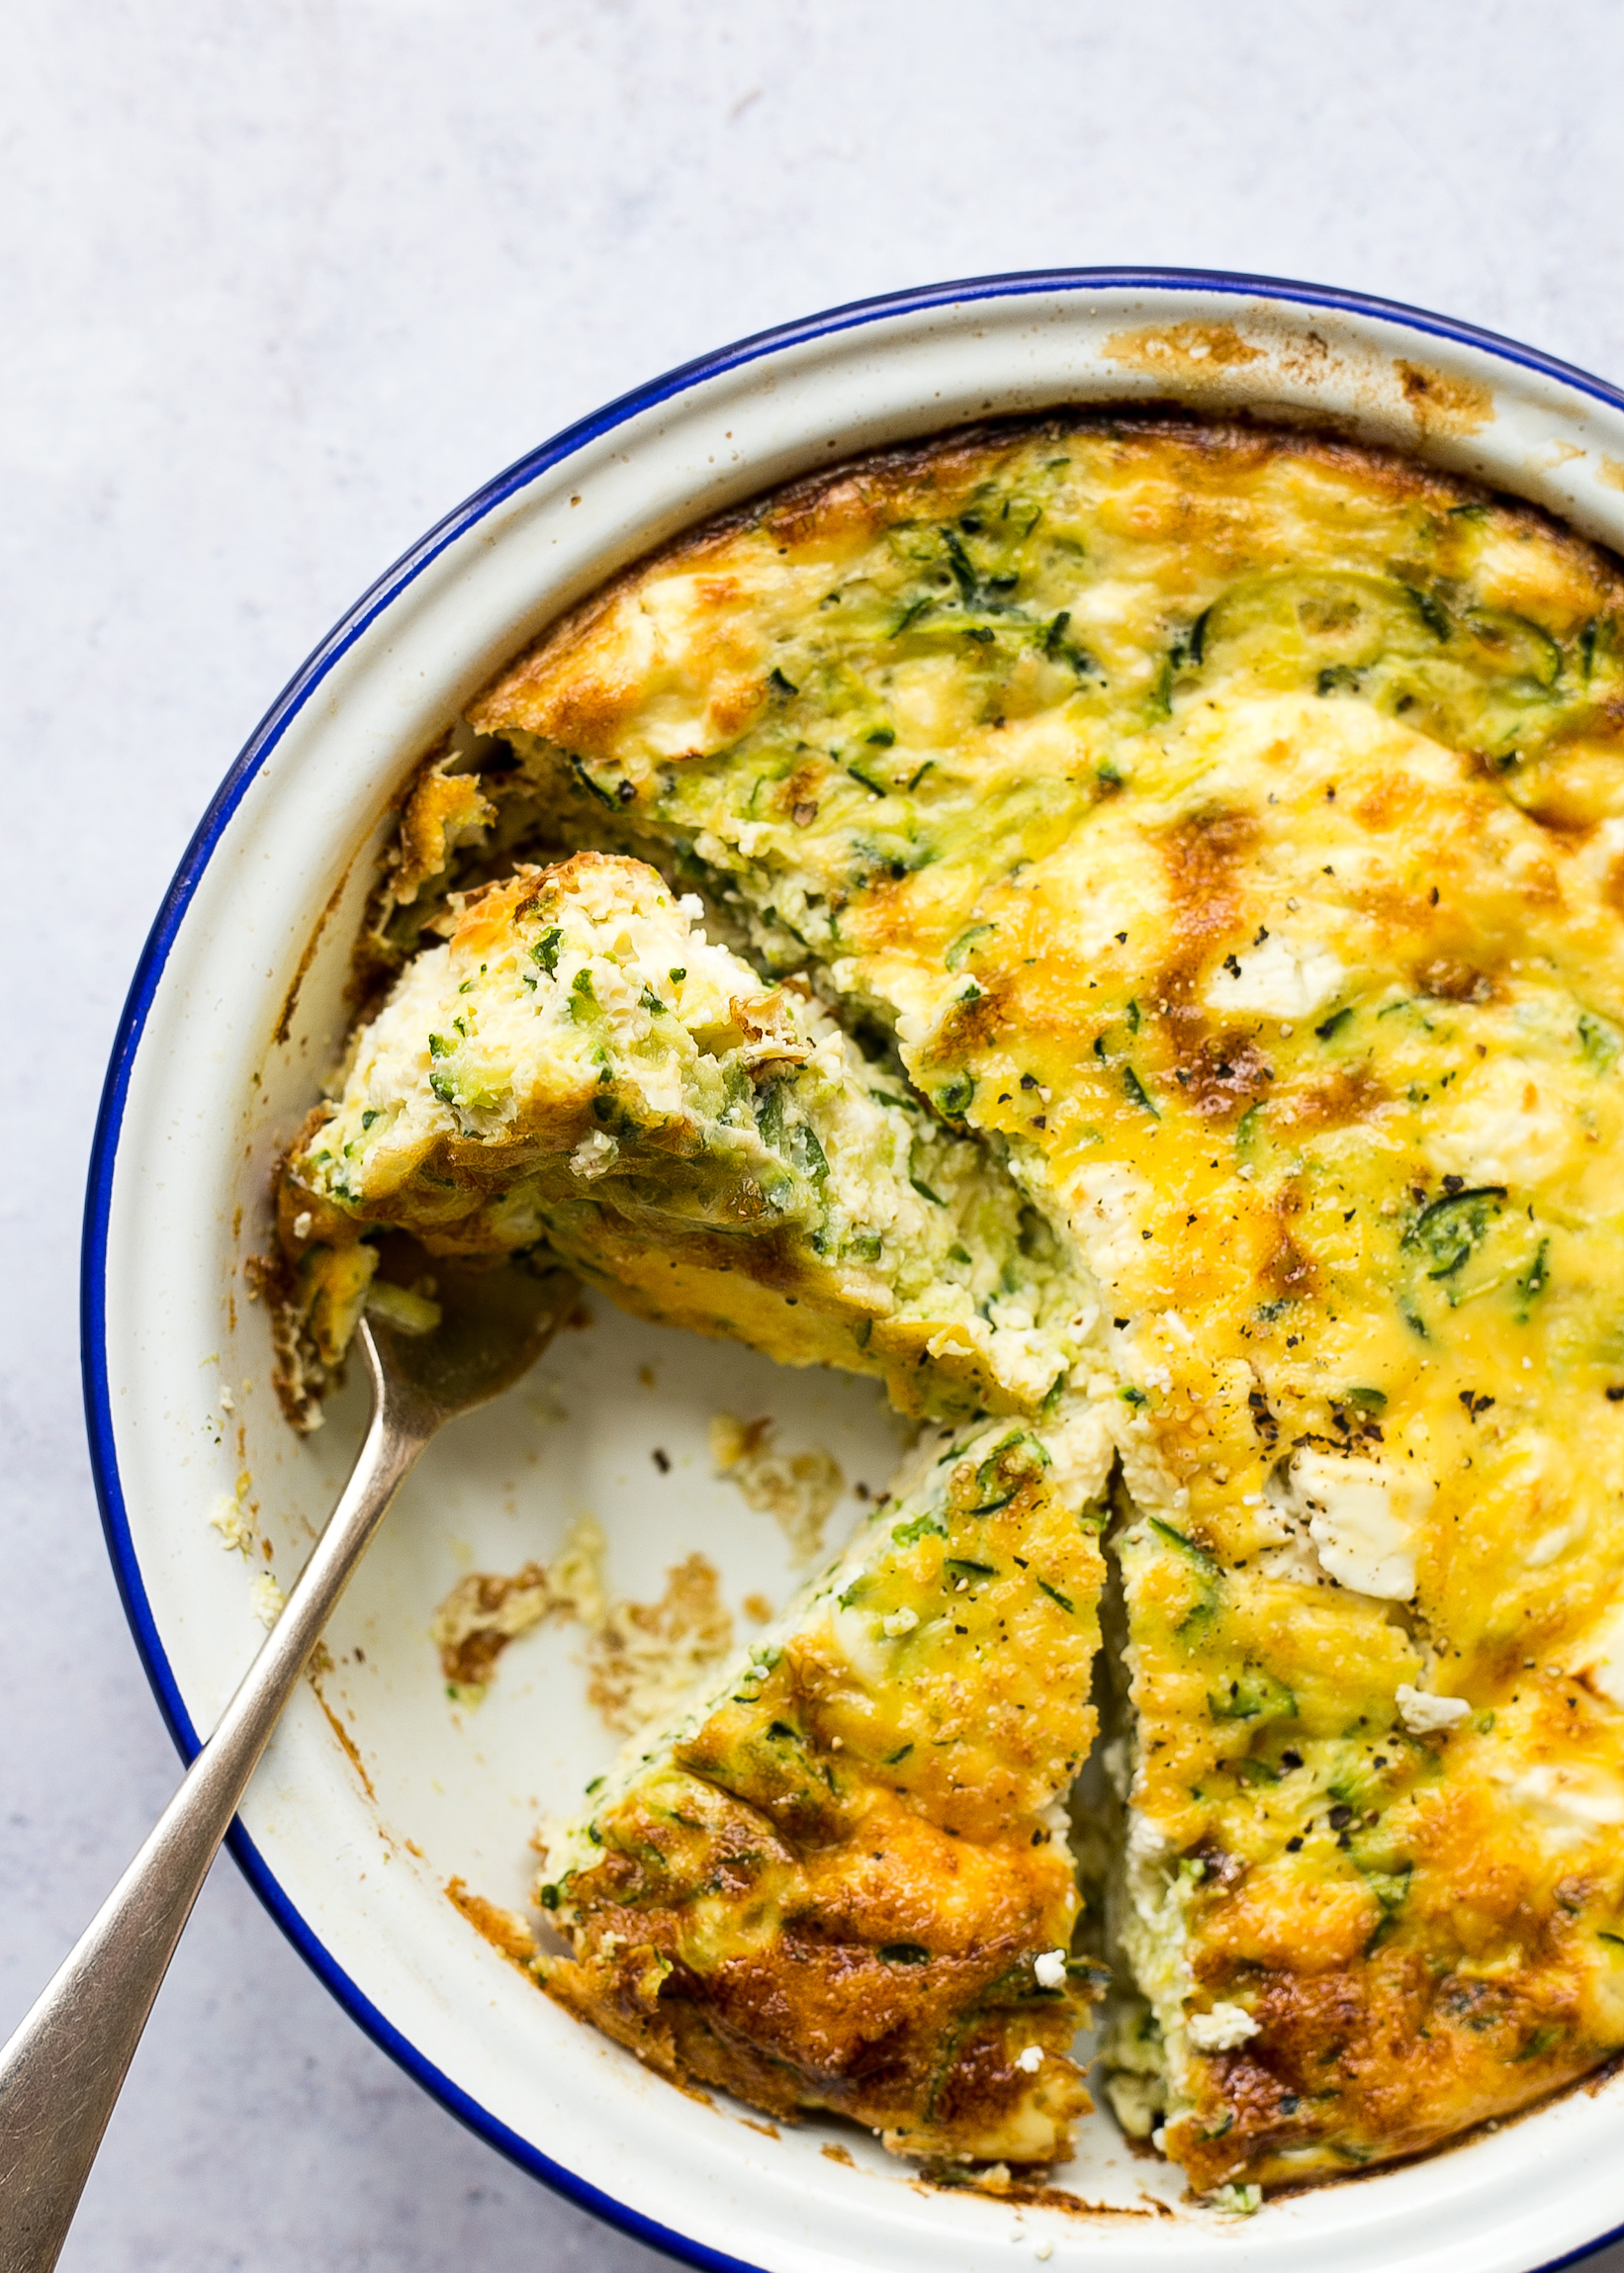 Low FODMAP courgette and feta frittata